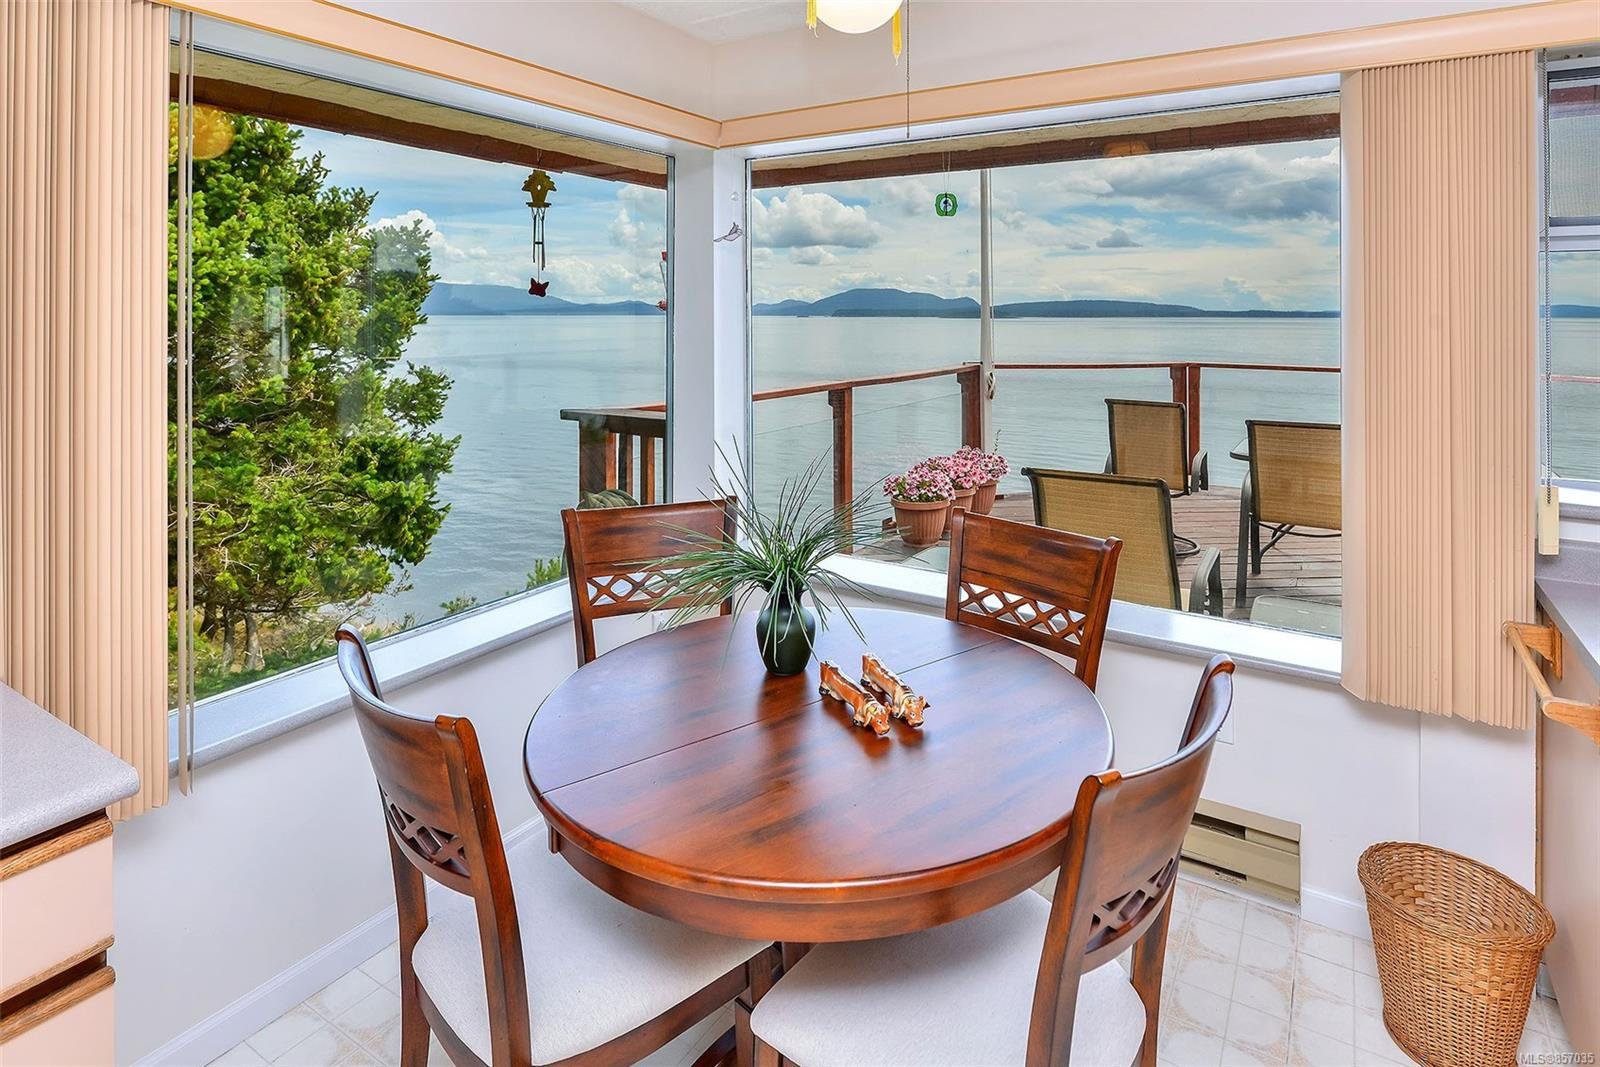 Photo 18: Photos: 172 Cliffside Rd in : GI Saturna Island House for sale (Gulf Islands)  : MLS®# 857035